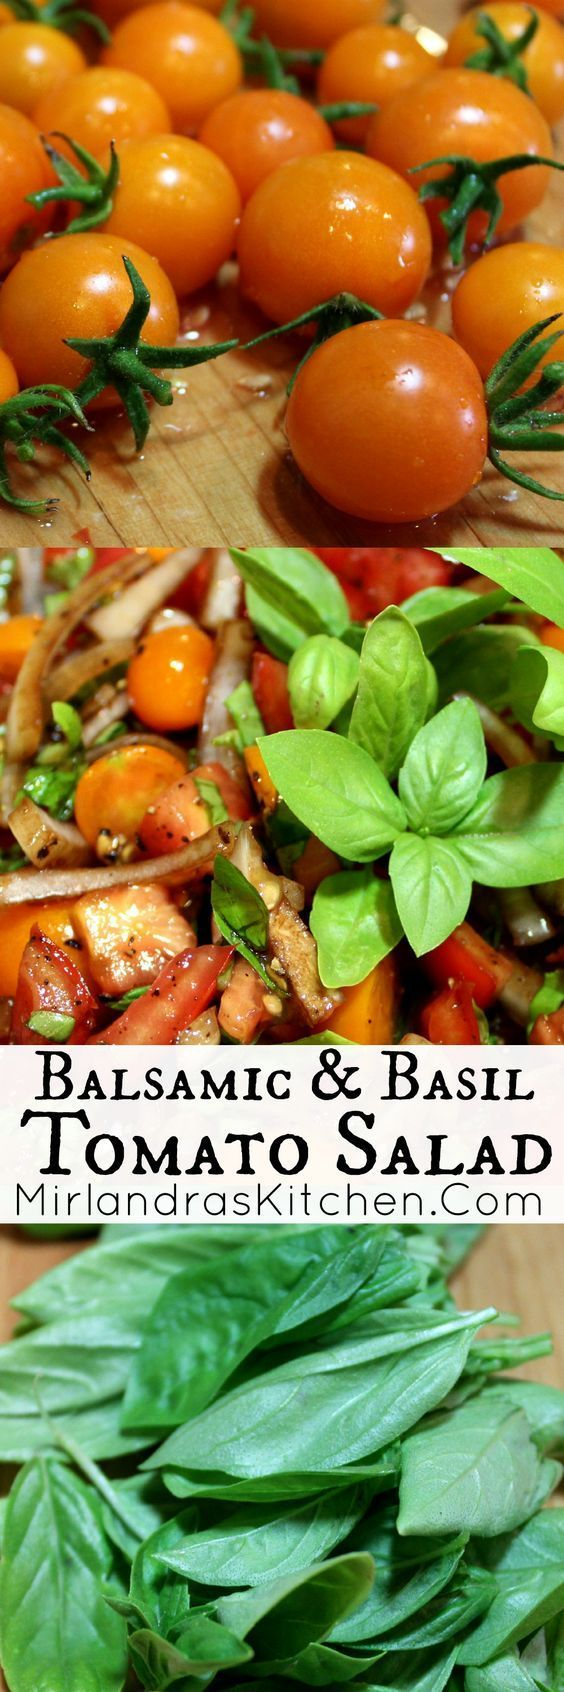 This tomato salad with basil, sweet onions, and reduced balsamic vinegar is easy, healthy, and beautiful. Everybody wants seconds all summer long.  If you have never reduced balsamic before this is the time to learn!  I include all the info on how to turn